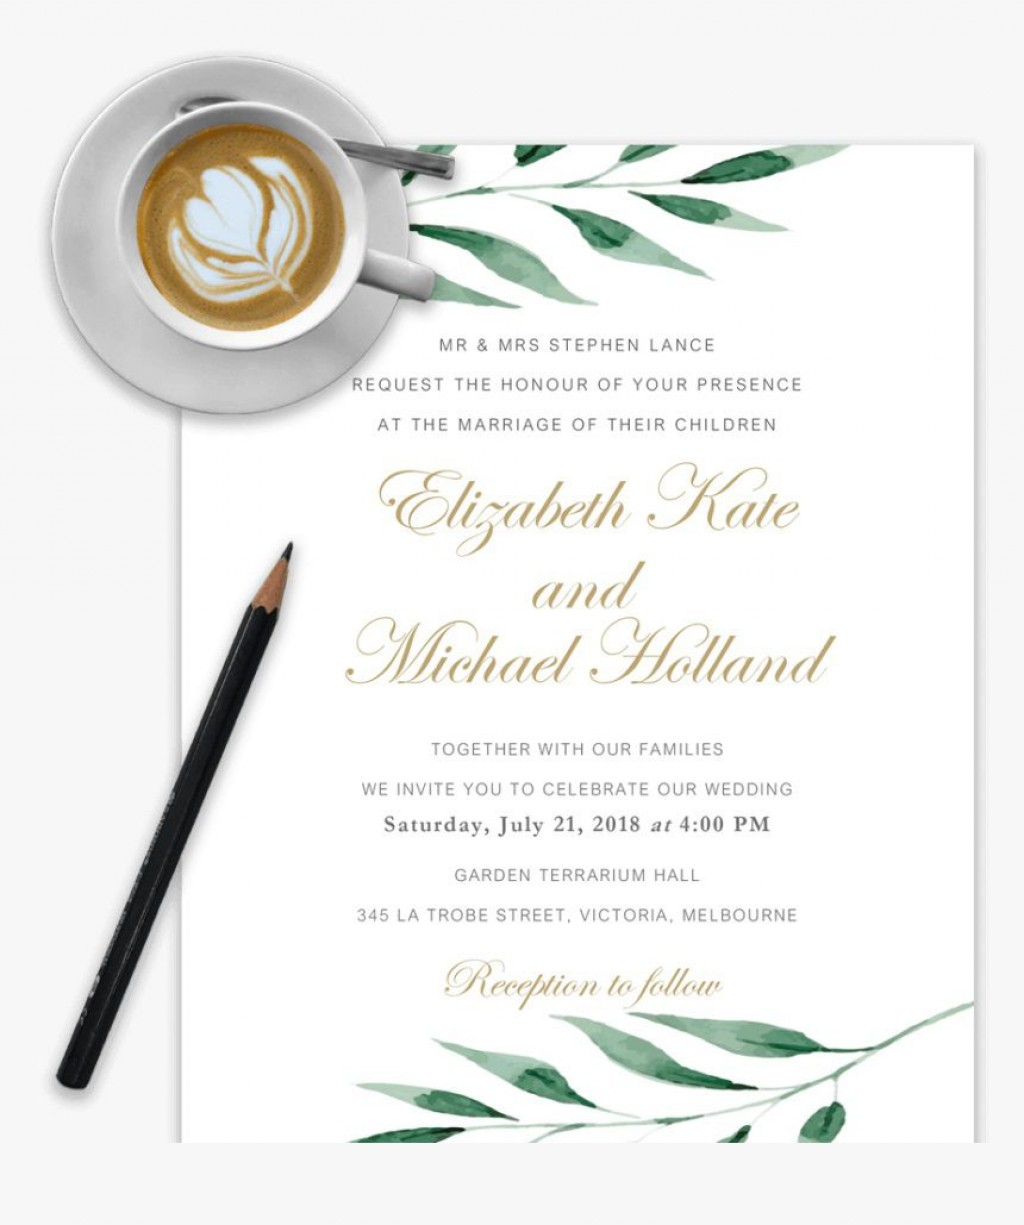 002 Fascinating Free Wedding Template For Word High Def  Invitation In Marathi MenuLarge